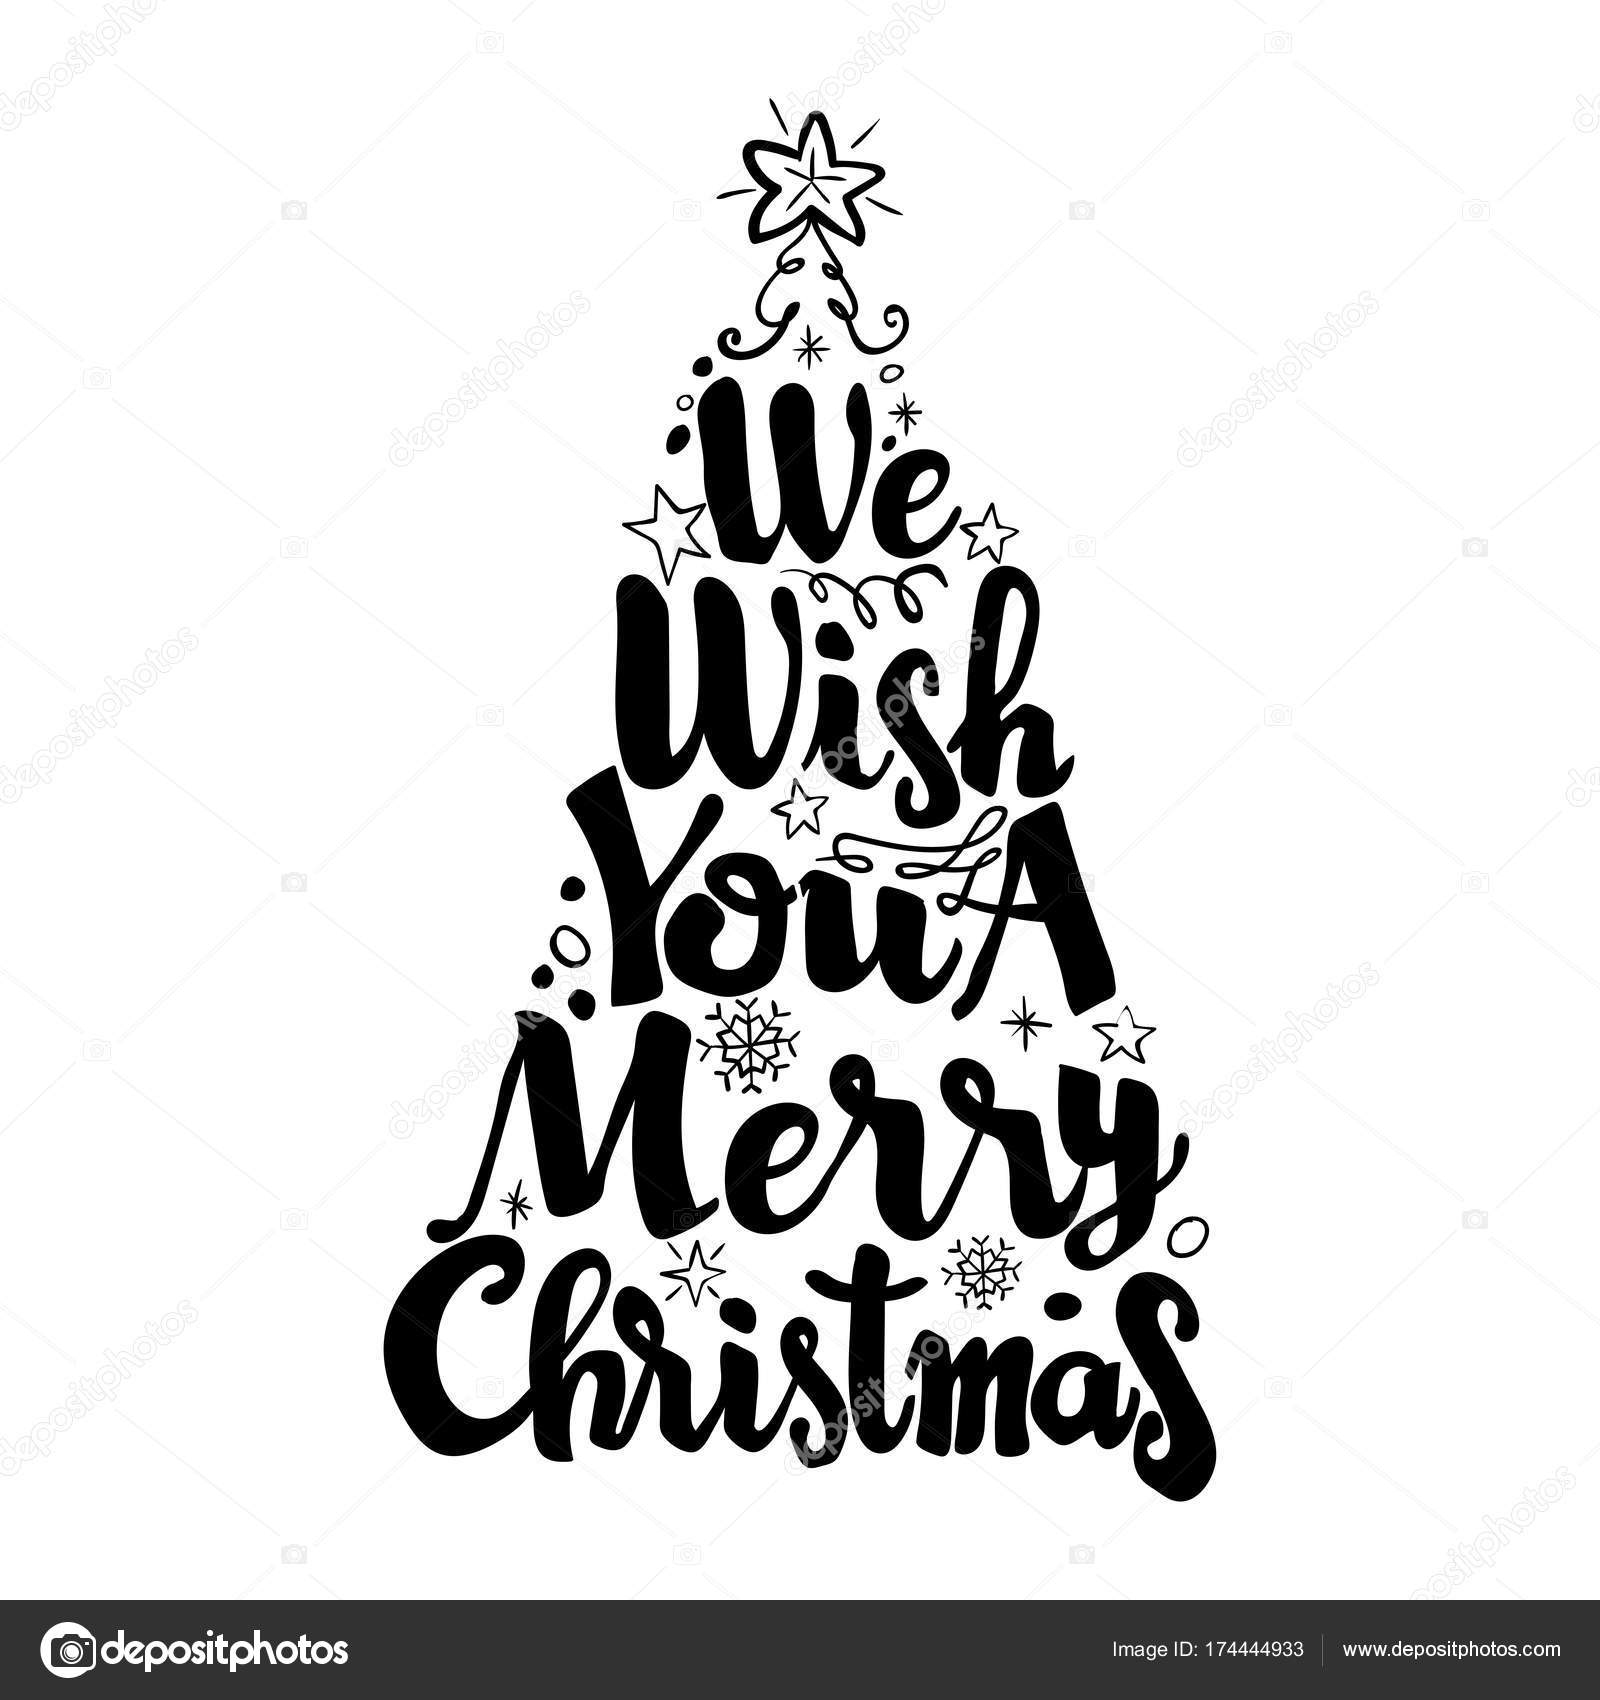 We wish you a merry christmas, lettering vector — Stock Vector ...